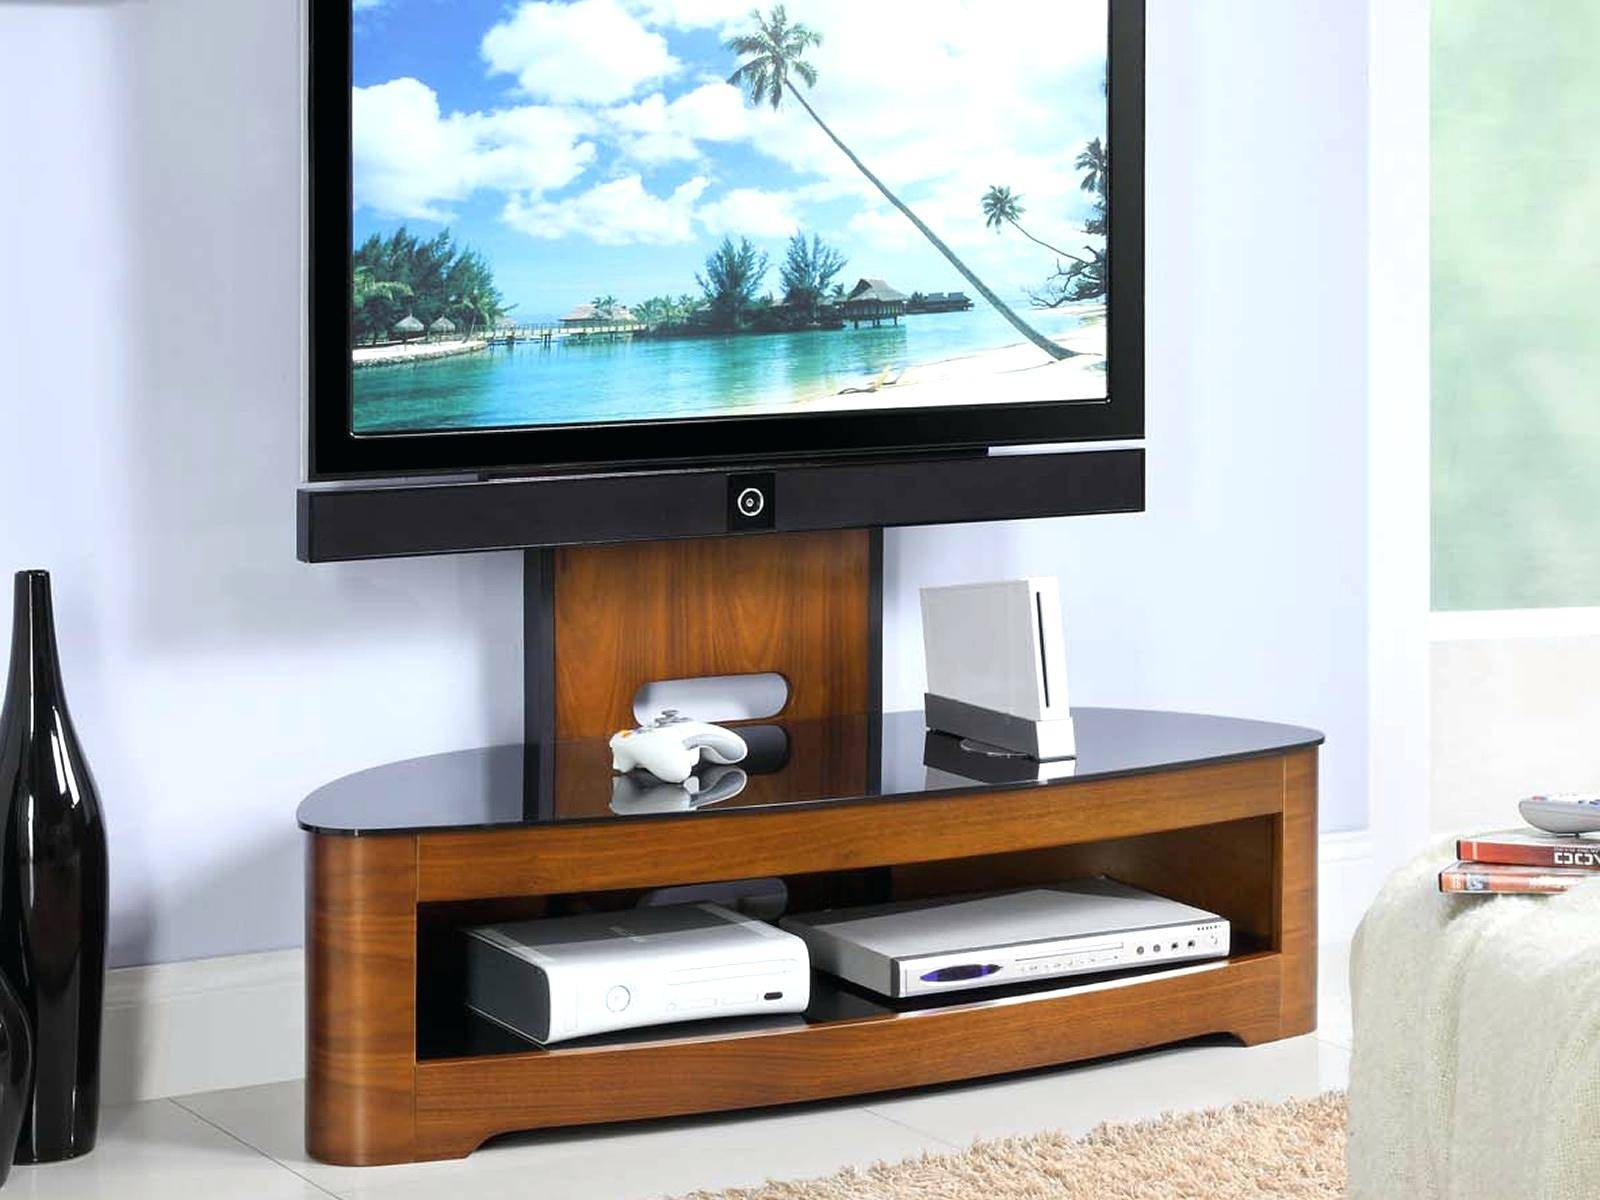 Tv Stand: Charming Corner Wooden Tv Stand For Home Space (View 2 of 15)